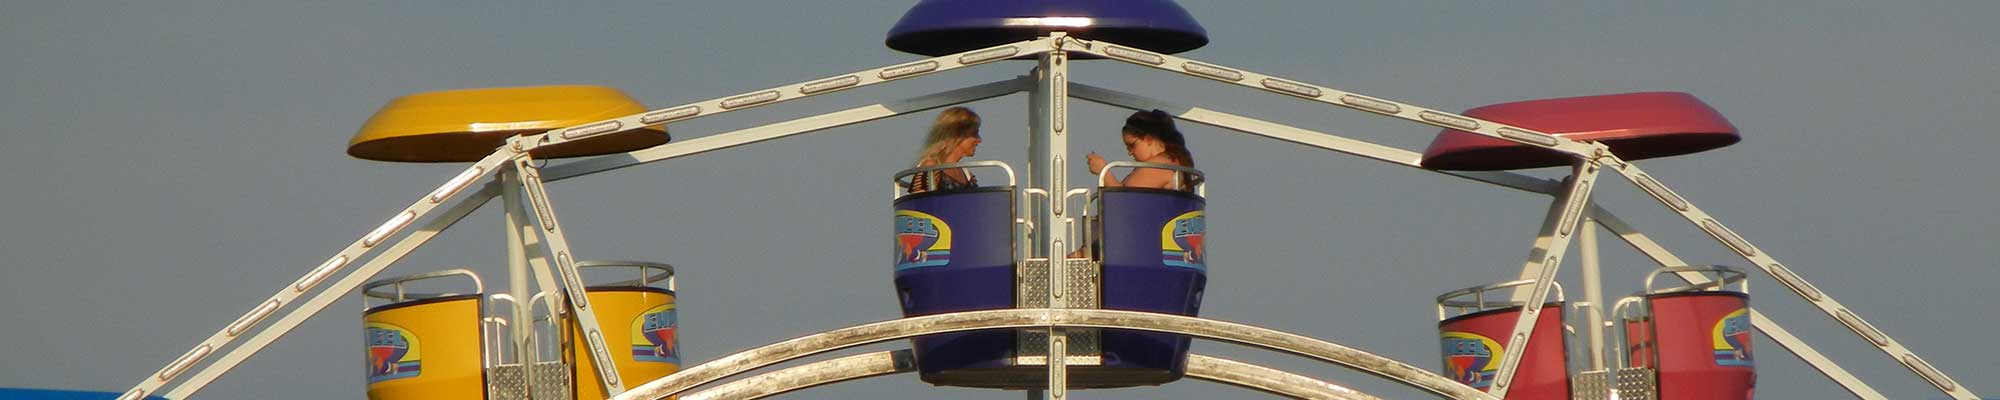 Two People on Ferris Wheel